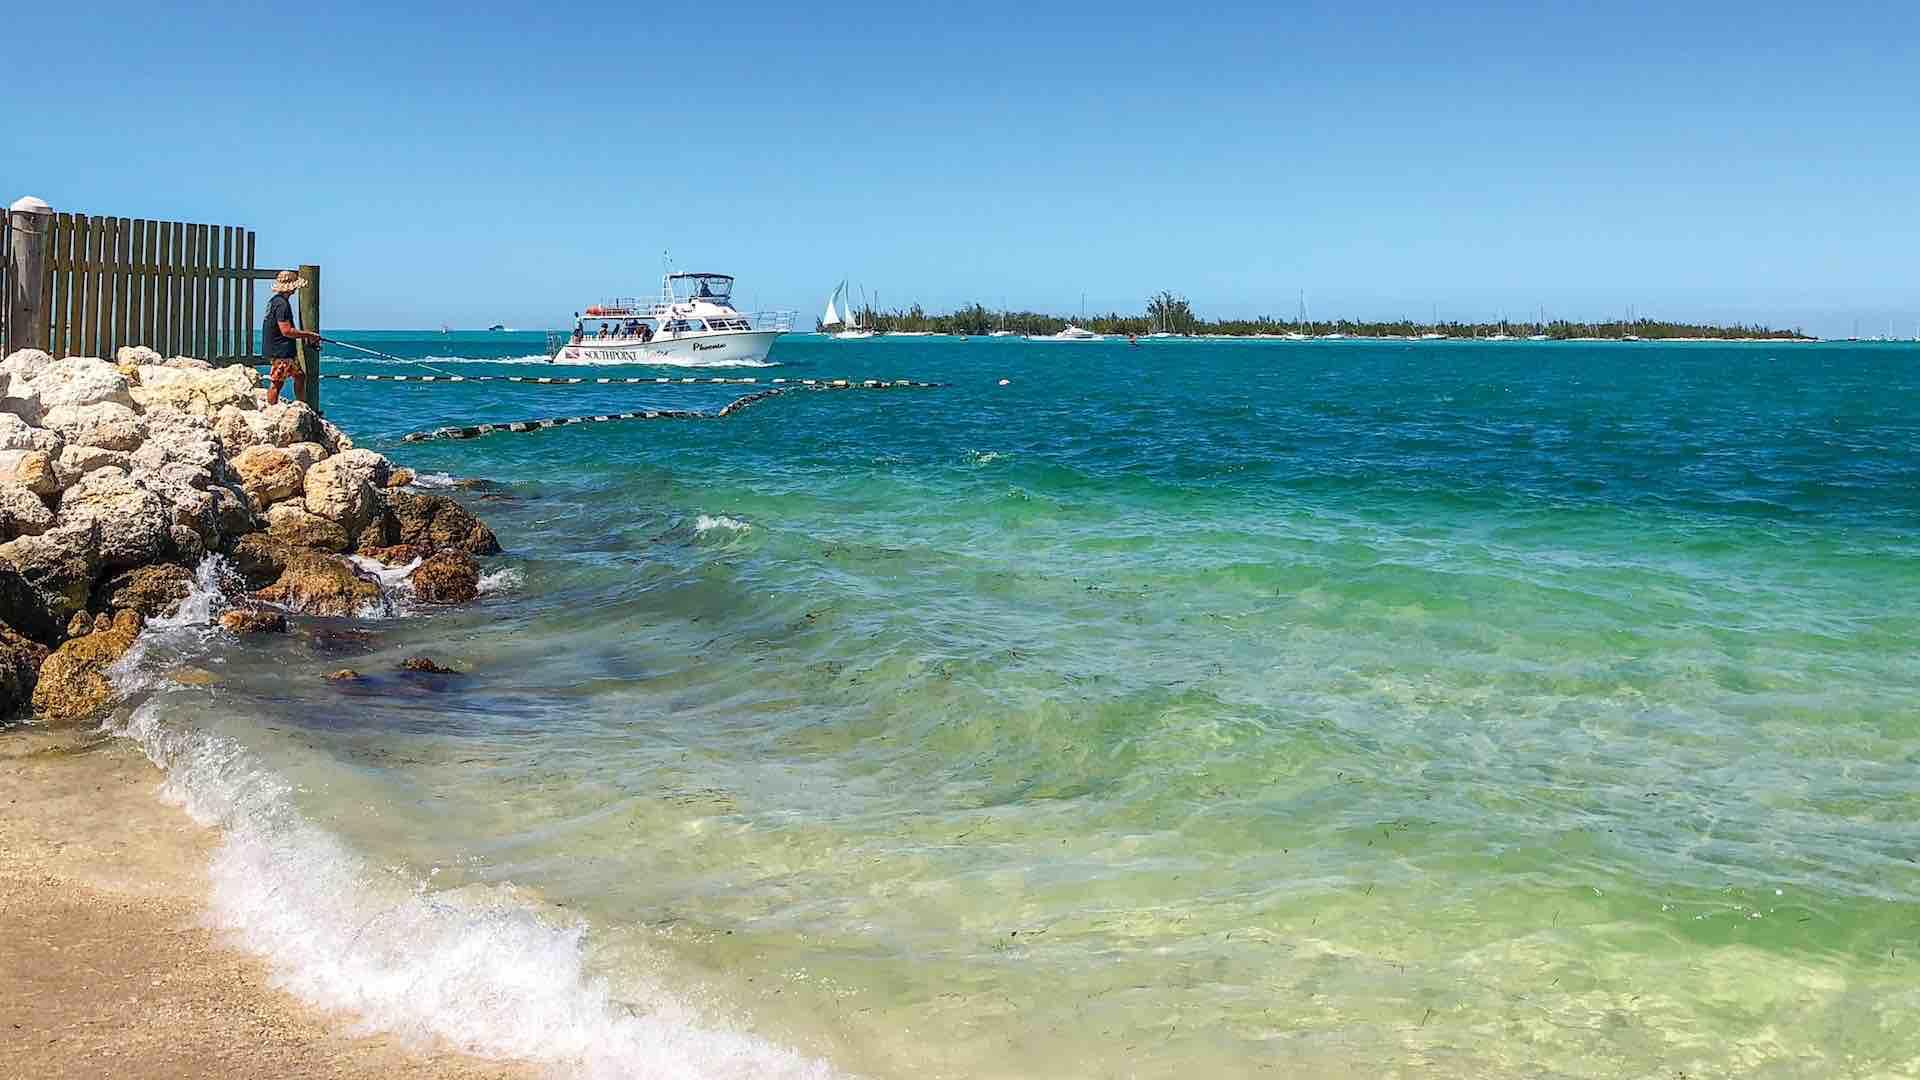 Simonton Beach is located on the Gulf side of the island...